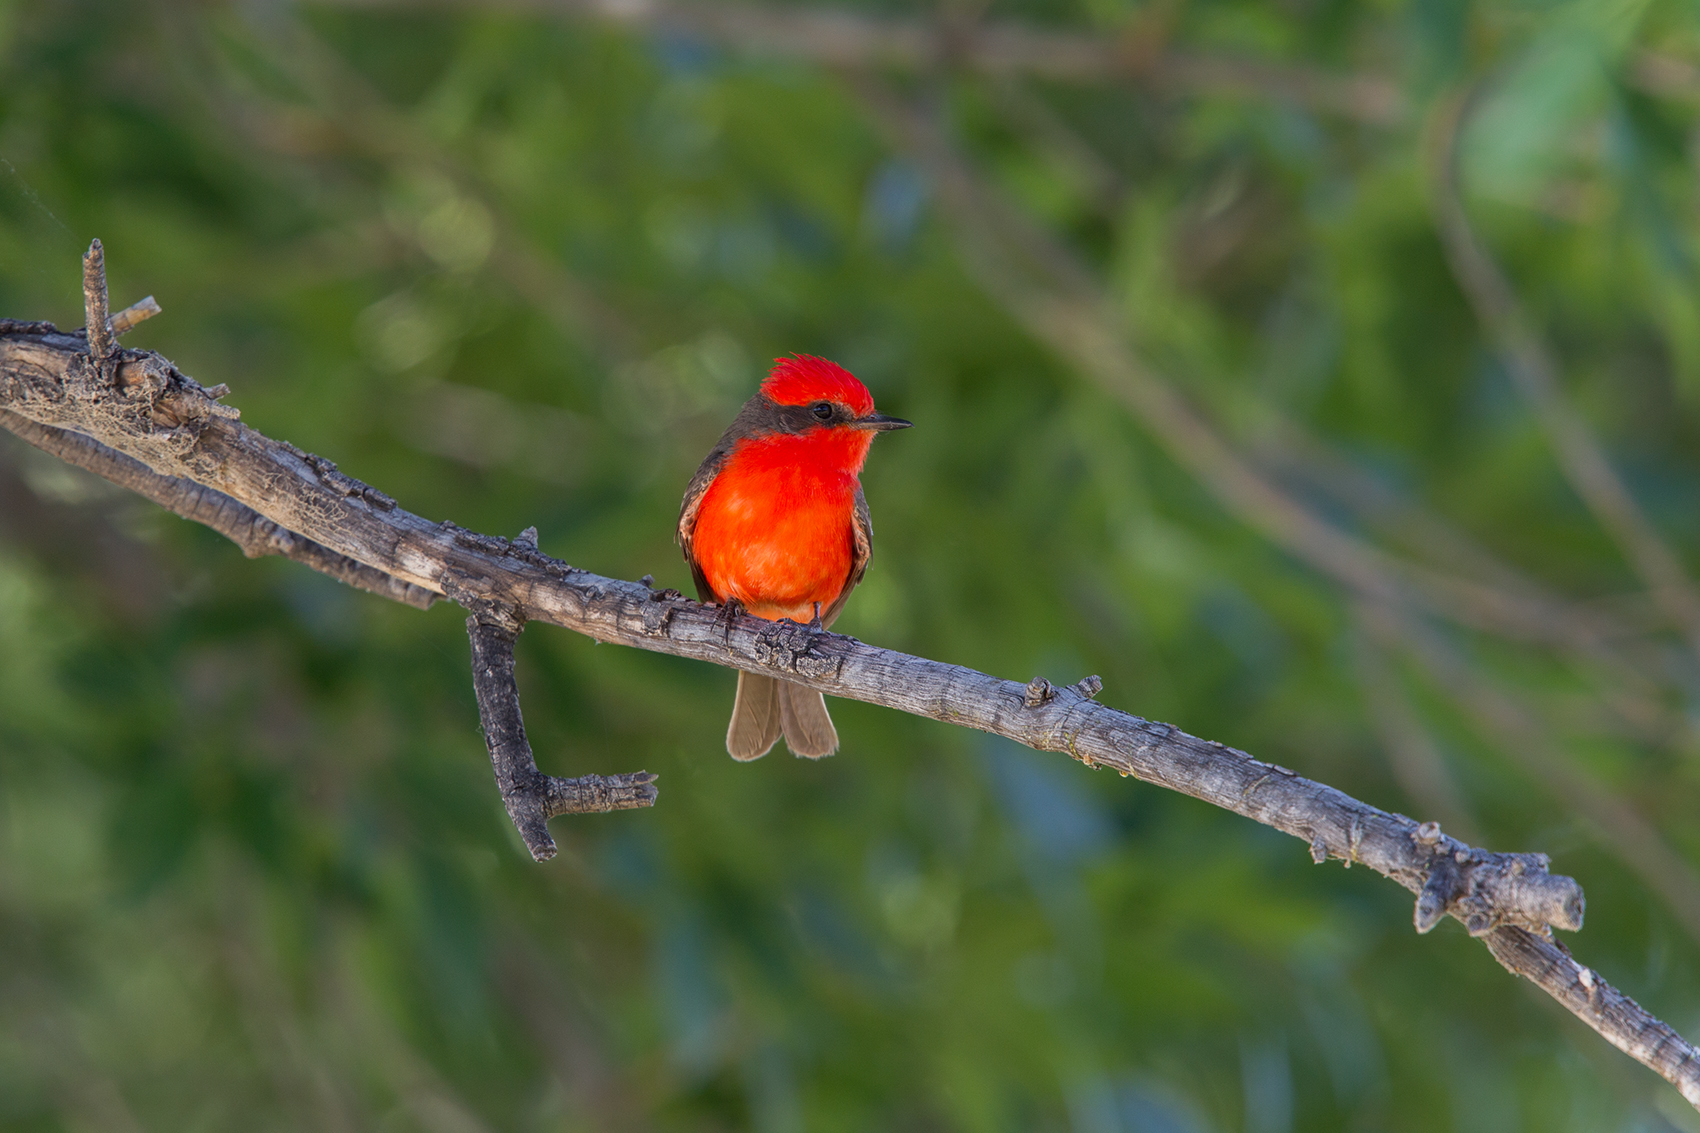 VERMILLION FLYCATCHER - BREWSTER COUNTY TX MAY, 2016